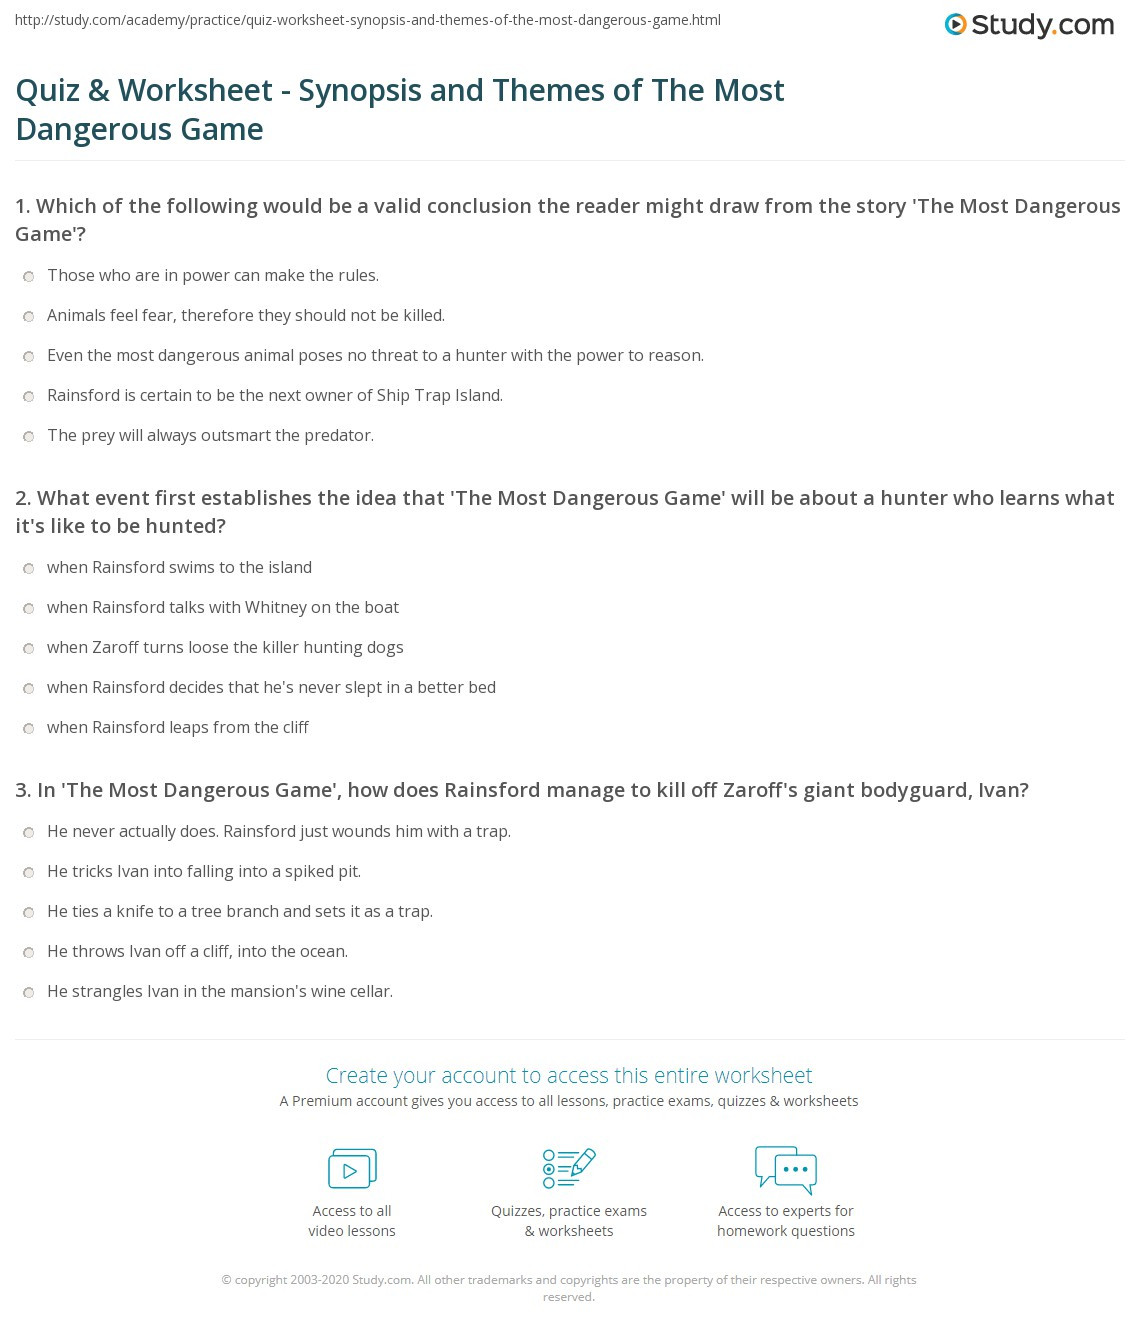 Theme Worksheets Middle School Quiz & Worksheet Synopsis and themes Of the Most Dangerous